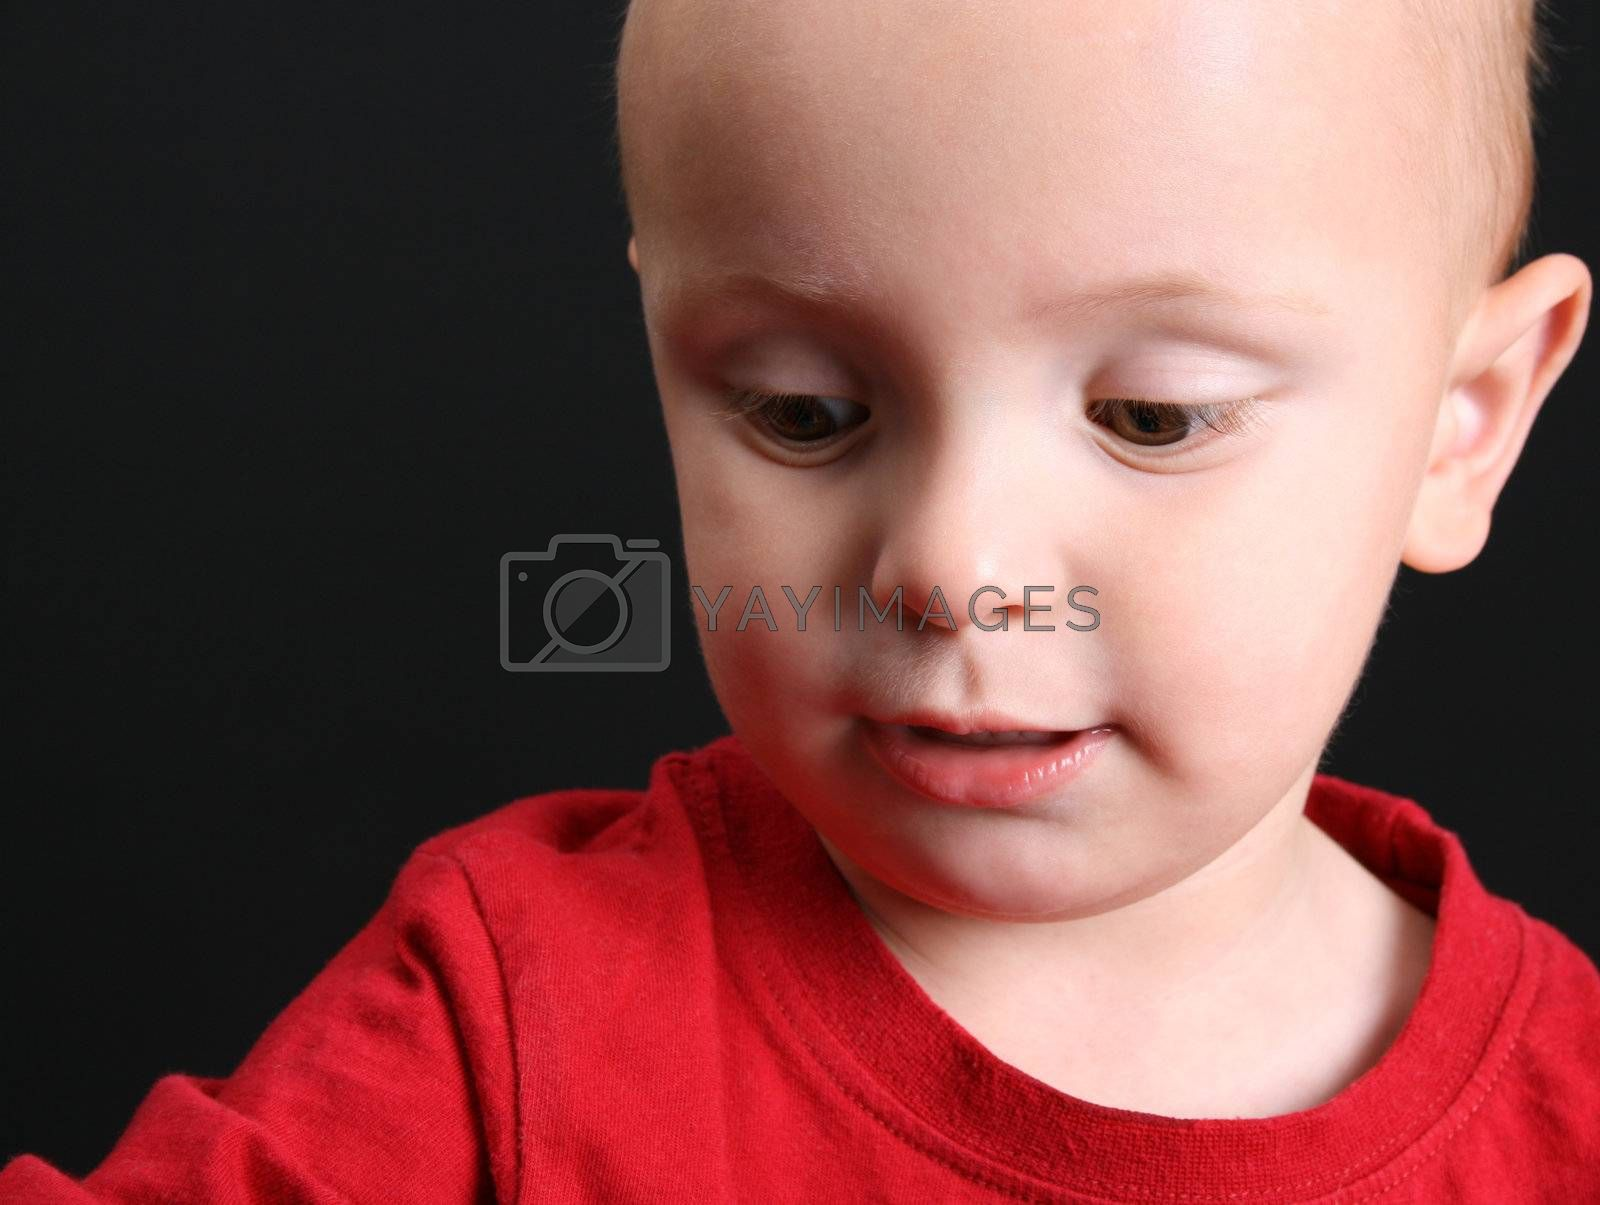 Blond toddler against a black background with a serious expression